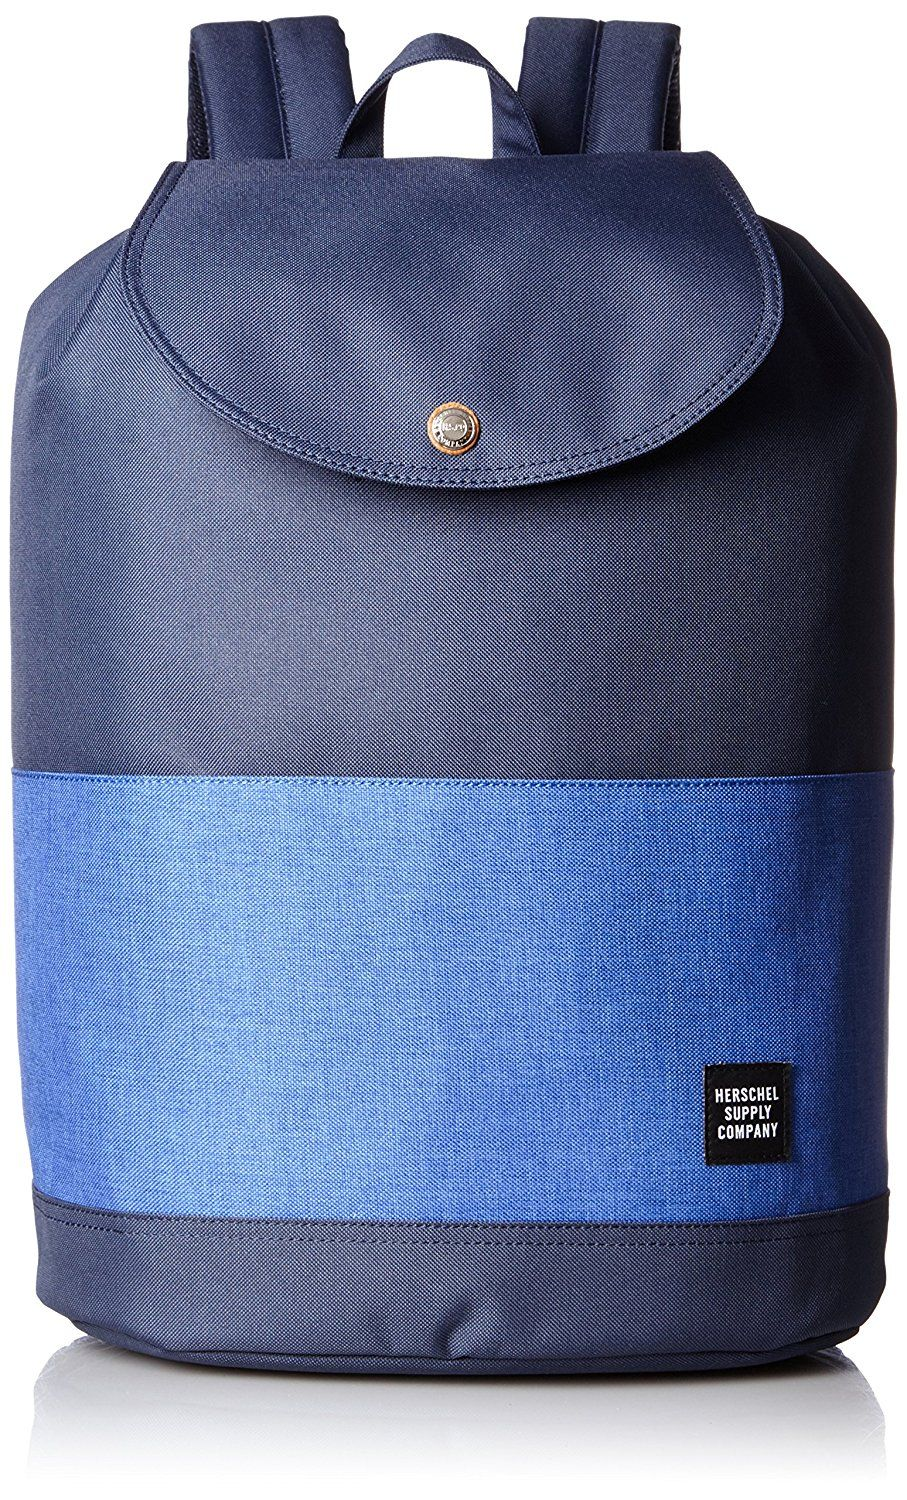 8bf48b3ab4a Herschel Supply Co. Reid Backpack Sale 50%. Now only  40.95